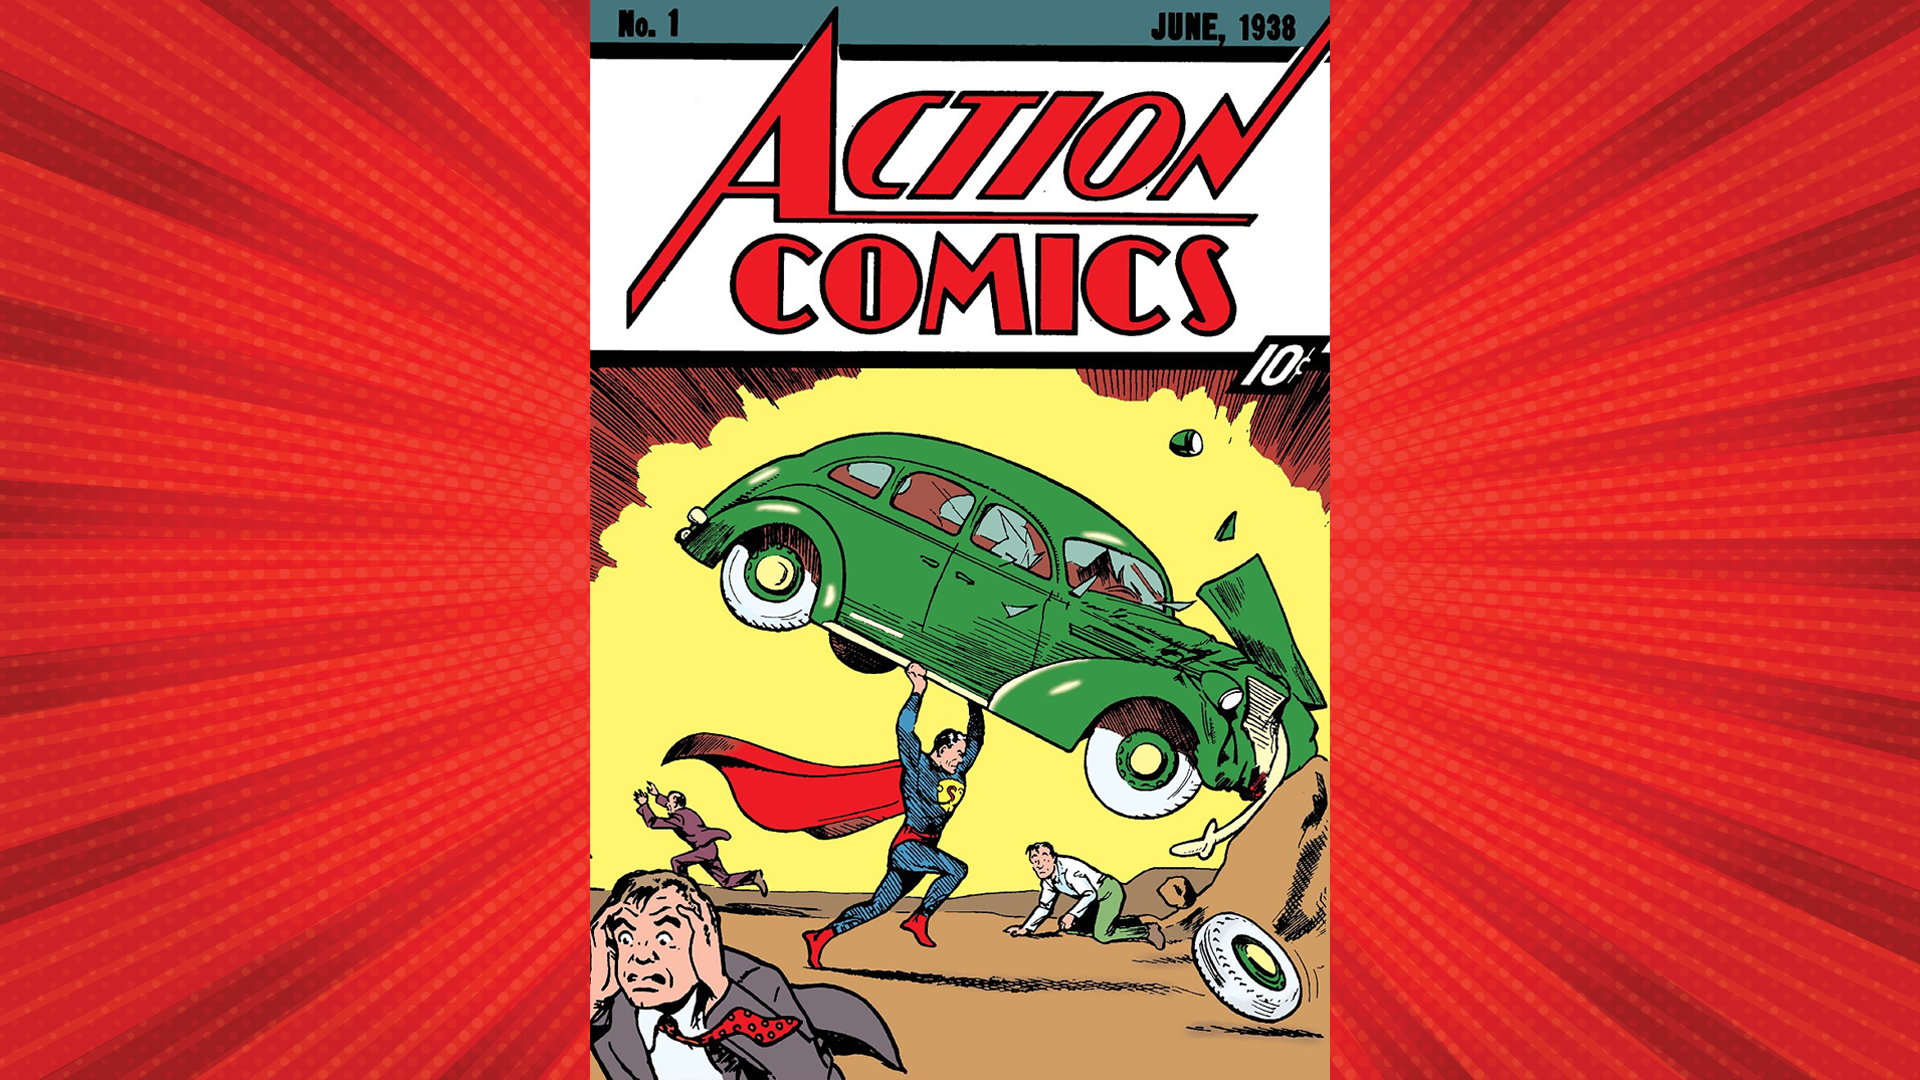 A Rare Vintage Superman Comic Book Just Sold for $3.25 Million thumbnail